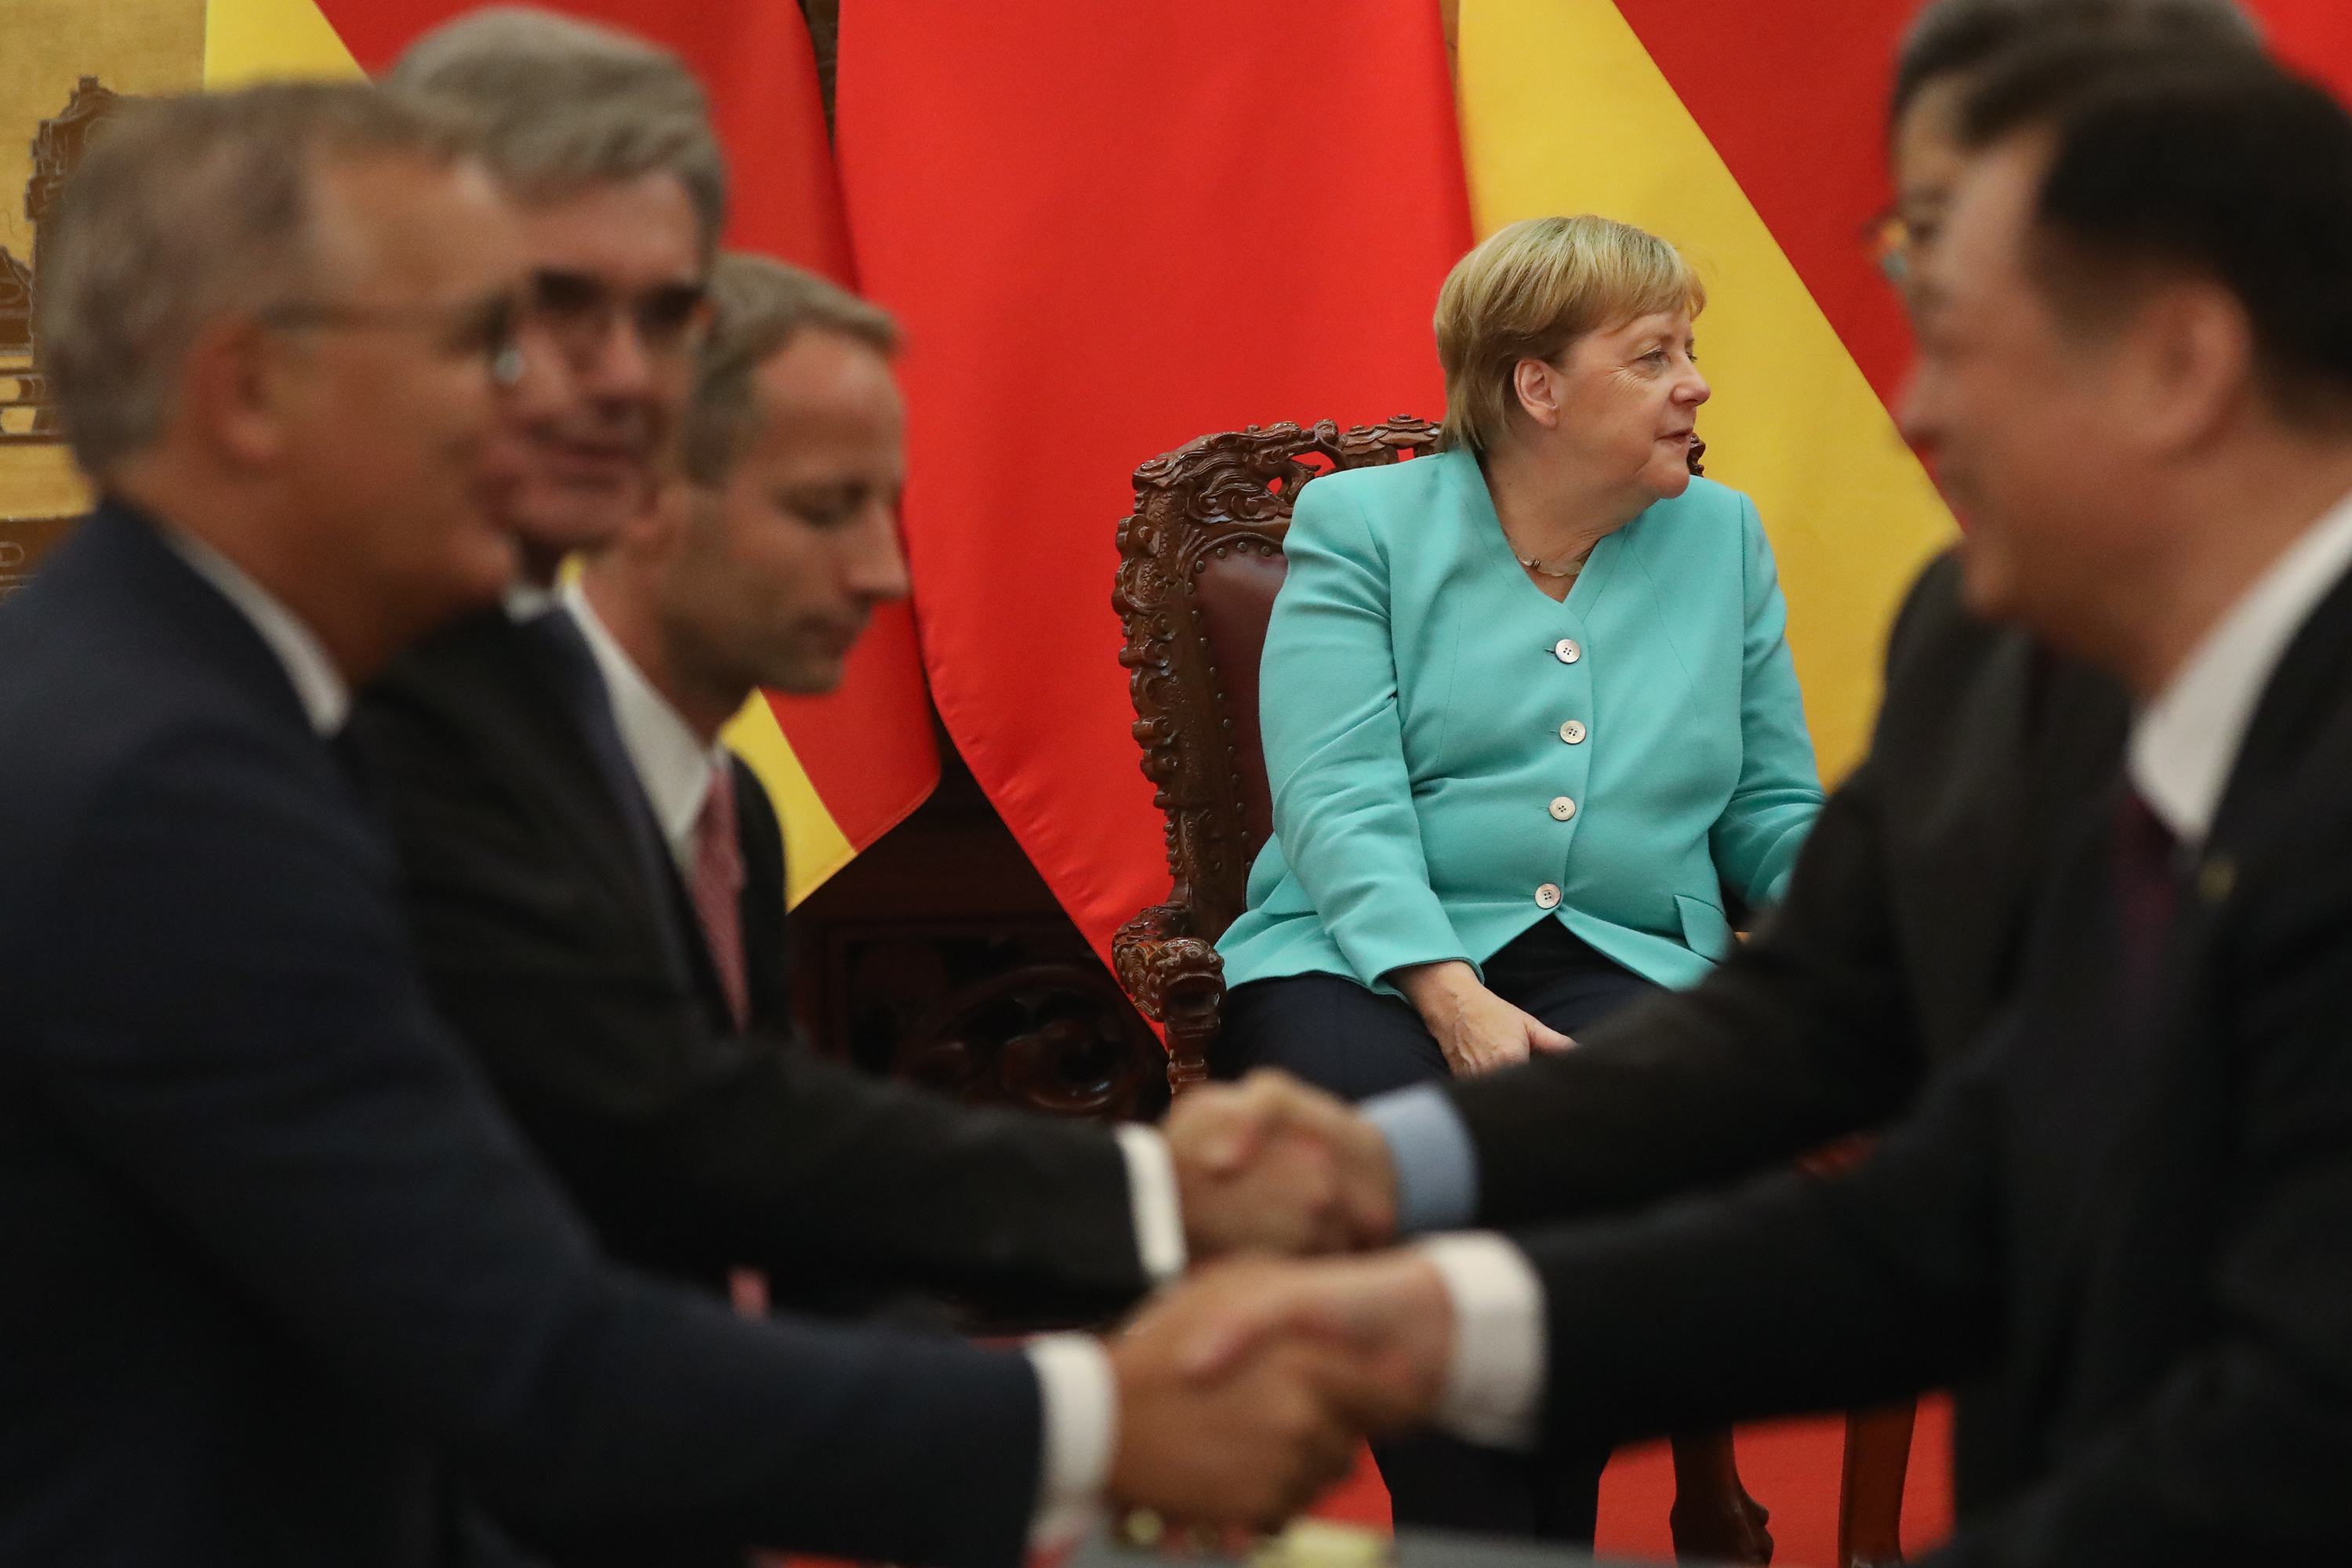 German Chancellor Angela Merkel talks with Chinese Premier Li Keqiang, not shown, during a meeting at The Great Hall Of The People in 2019 in Beijing. (Andrea Verdelli/Getty Images)